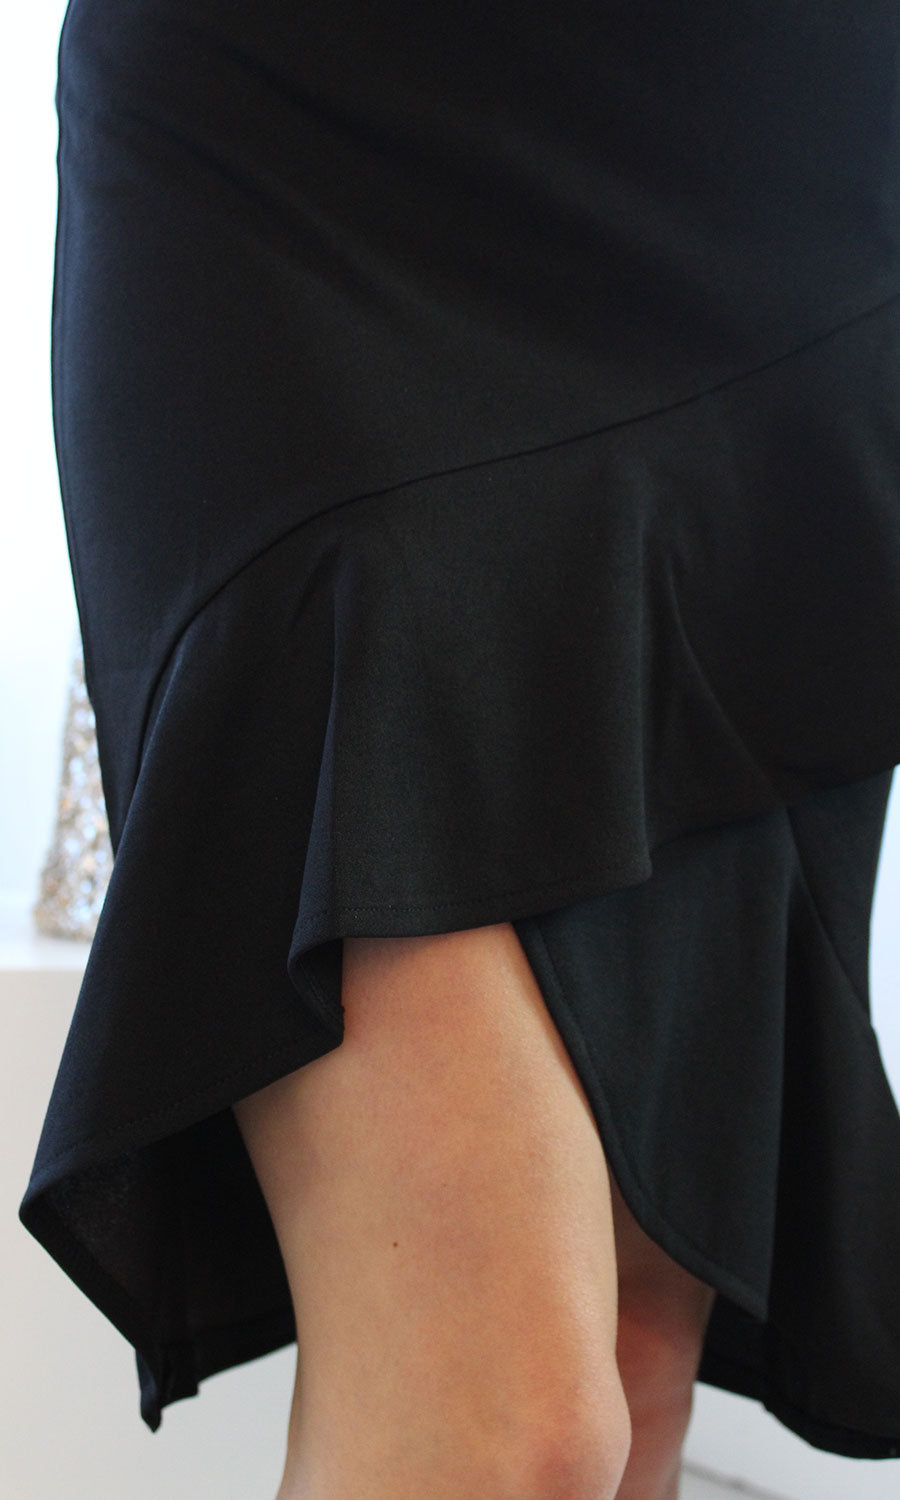 Women's Black Ruffle Skirt - Smith & Angie Boutique